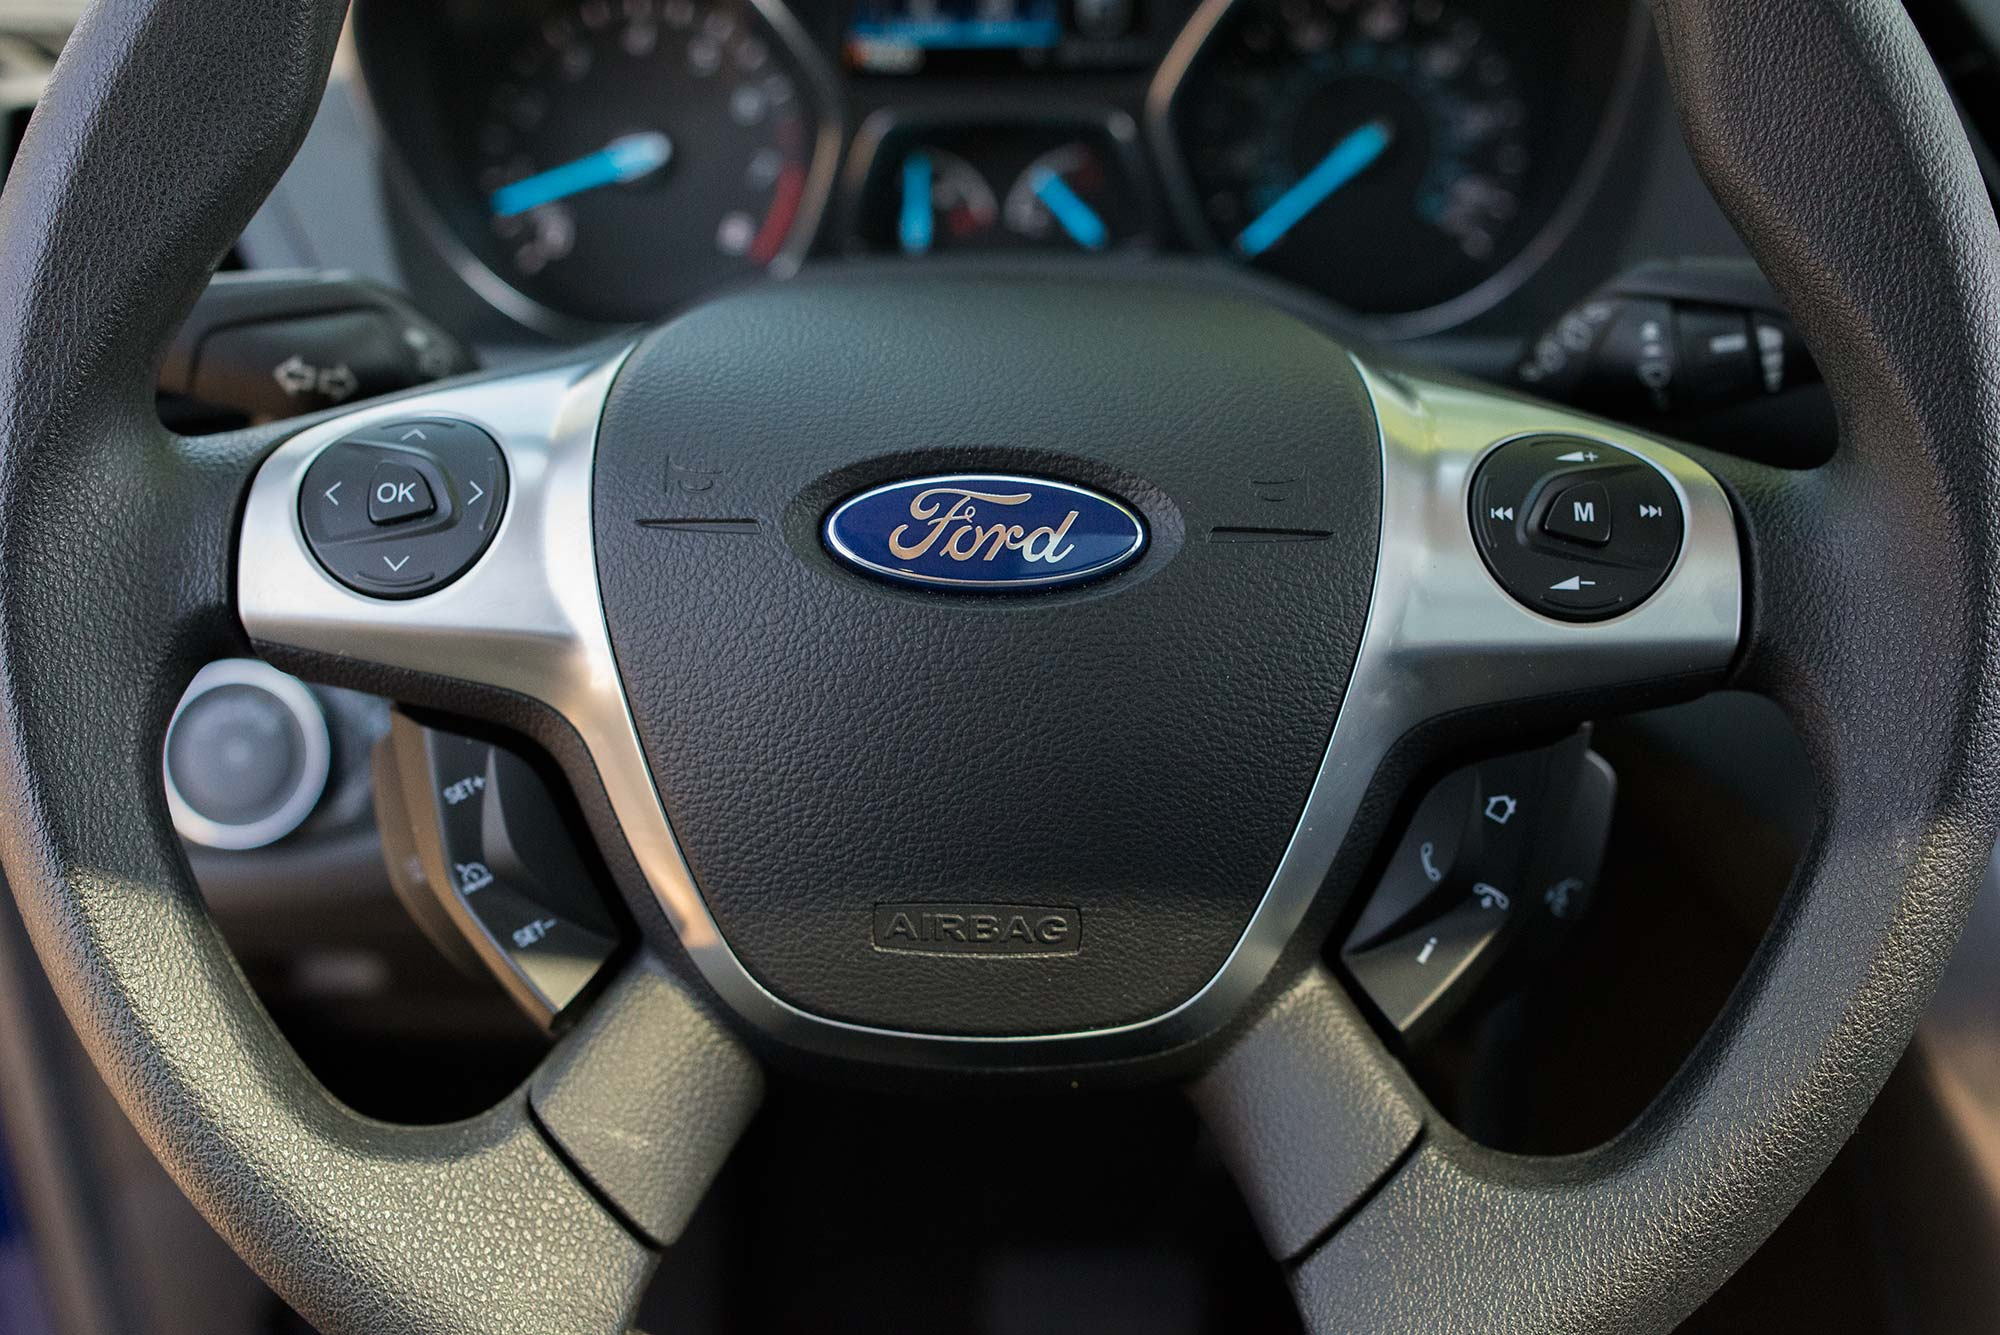 2014 Ford Escape Steering wheel